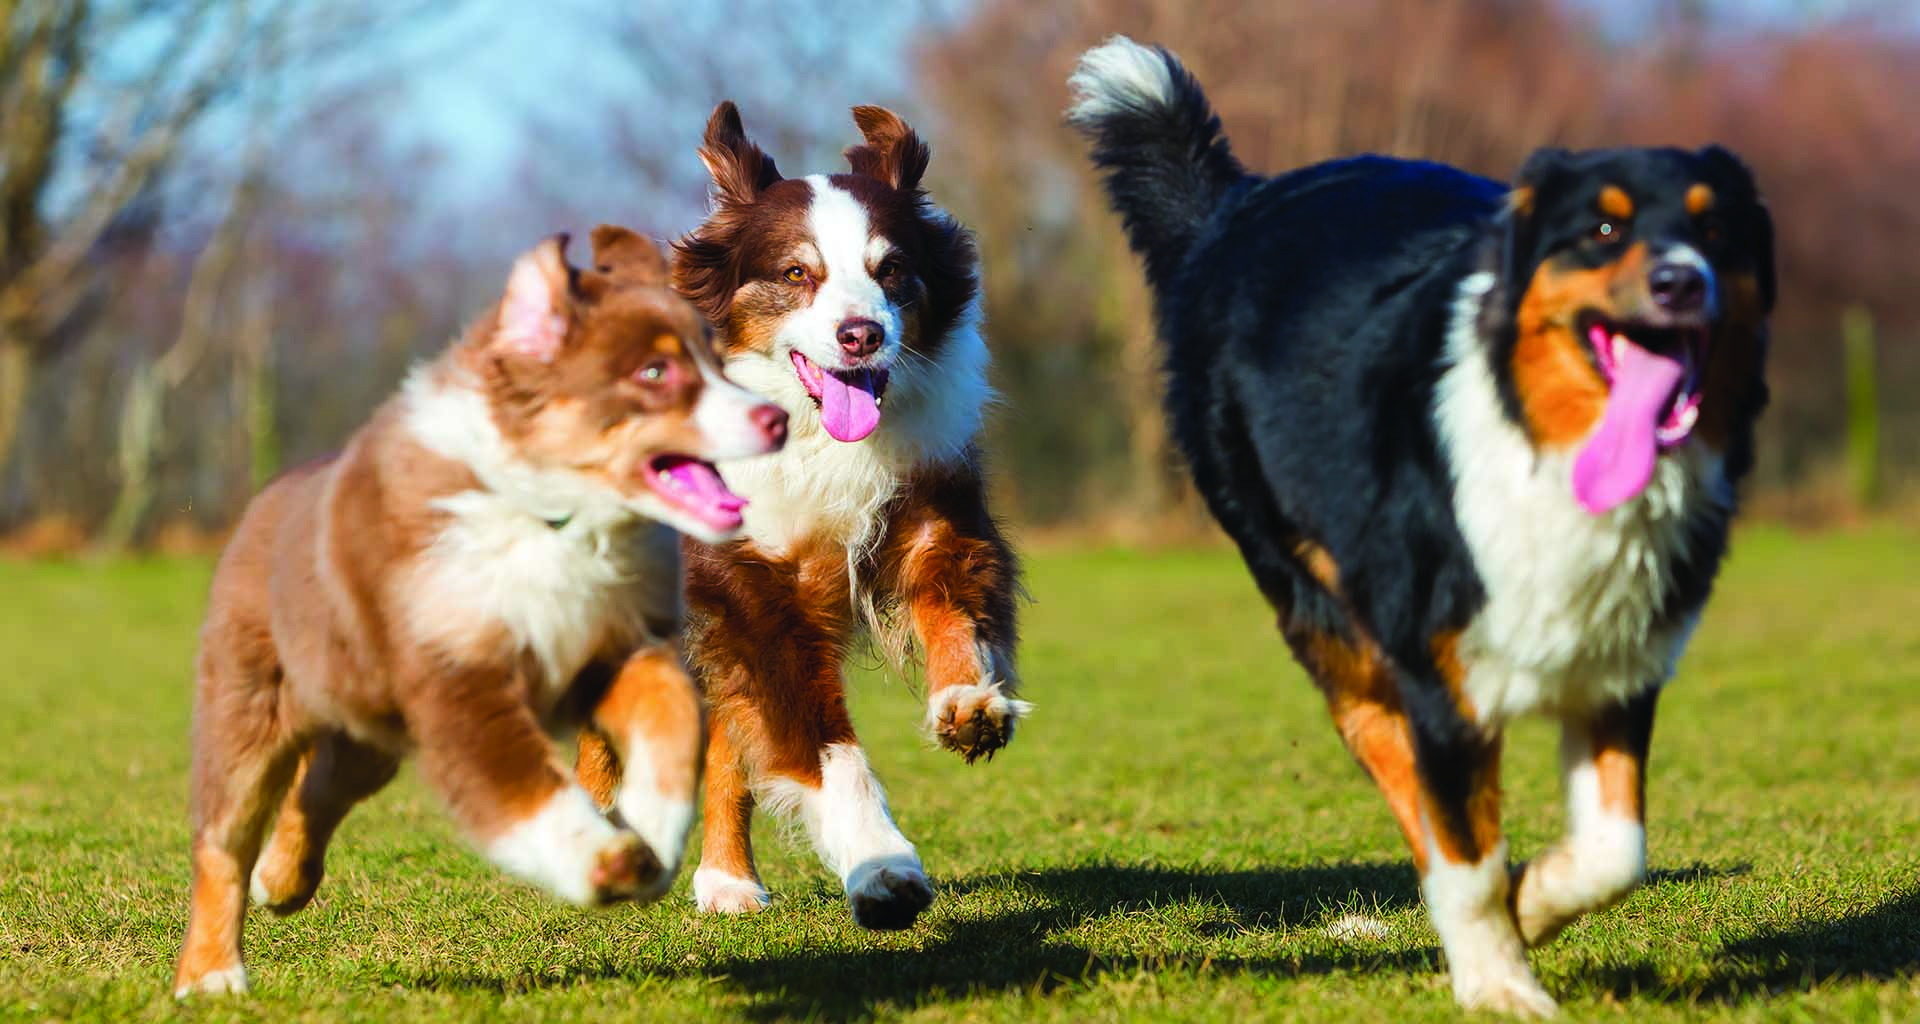 Dogs running and playing happily at Diggity Dawg Daycare in Wernersville, Pennsylvania.